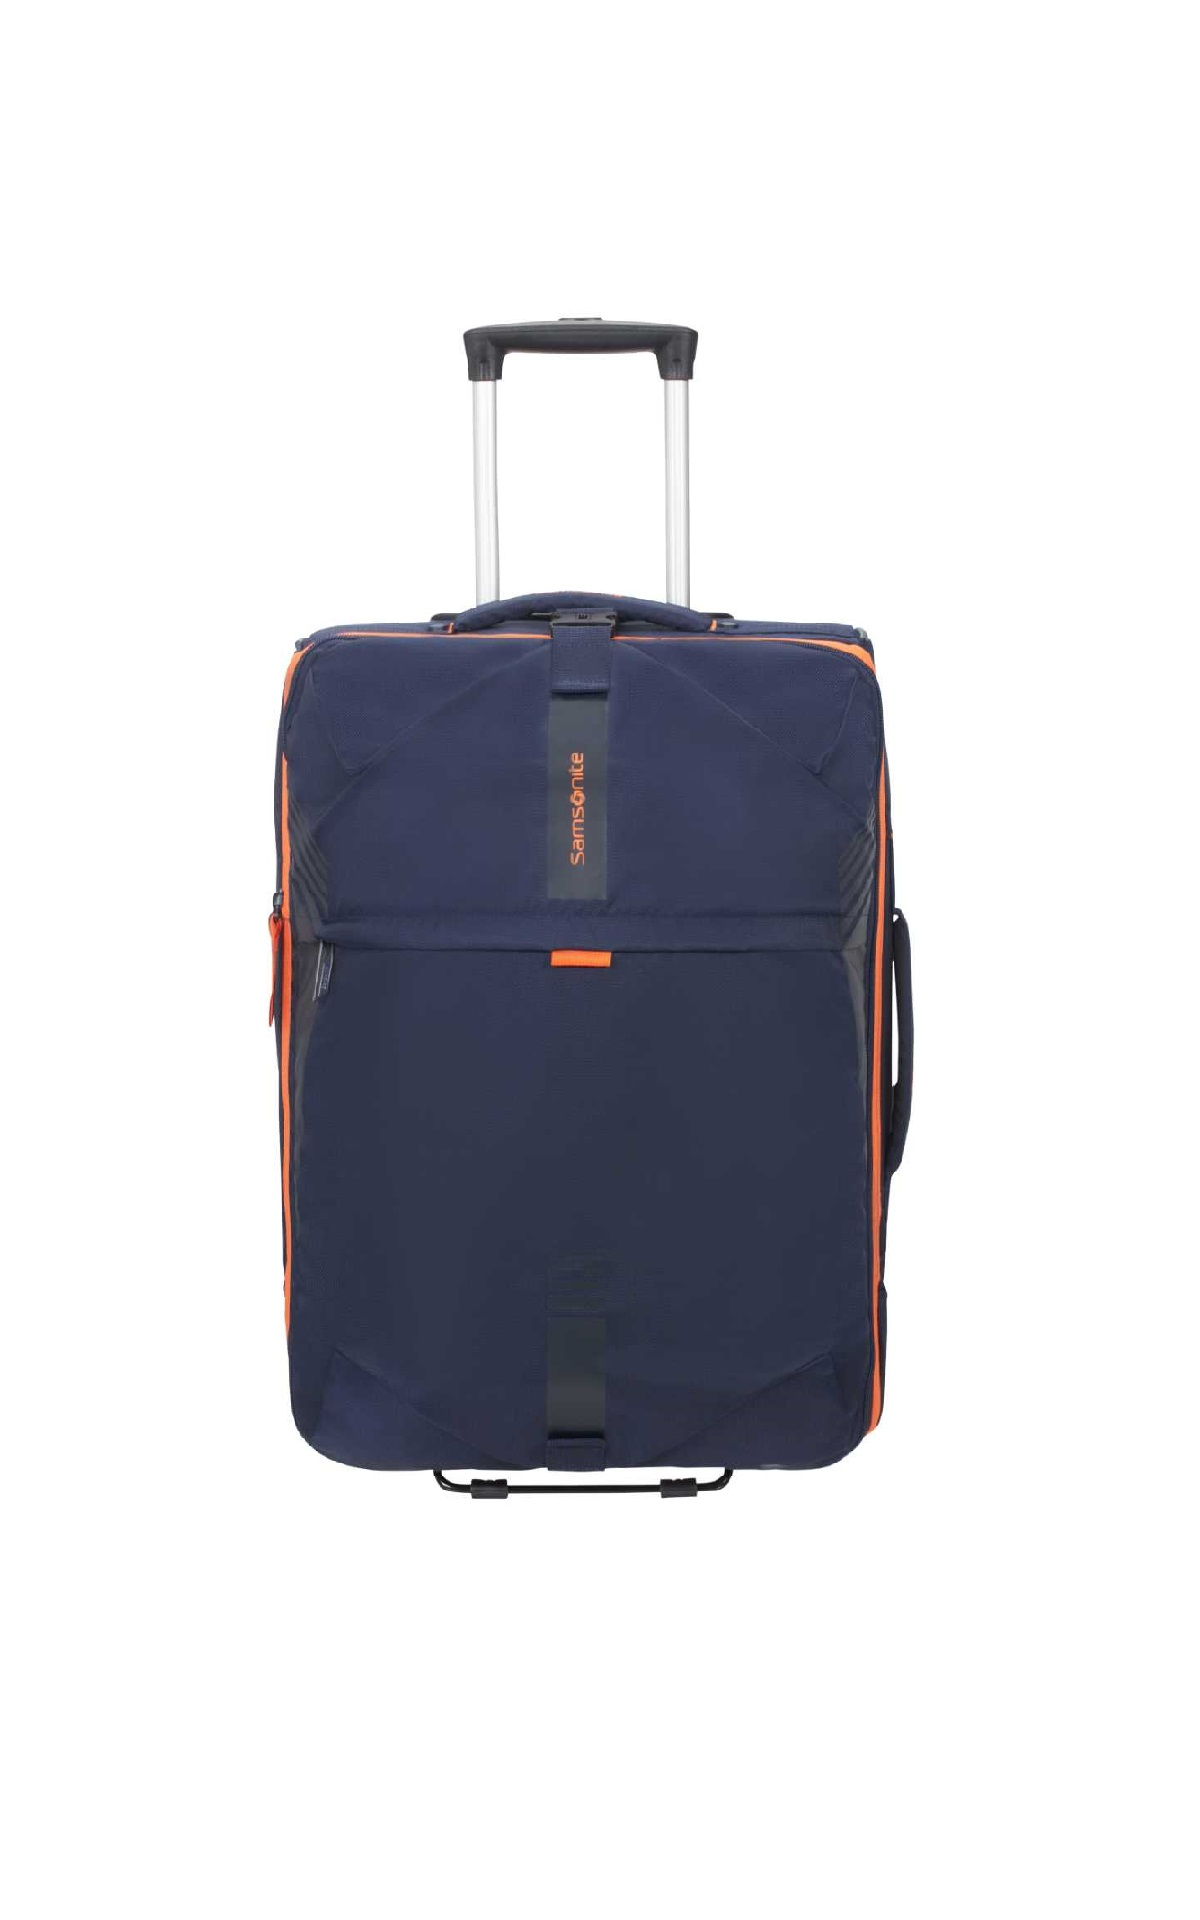 Explorall suitcase Samsonite